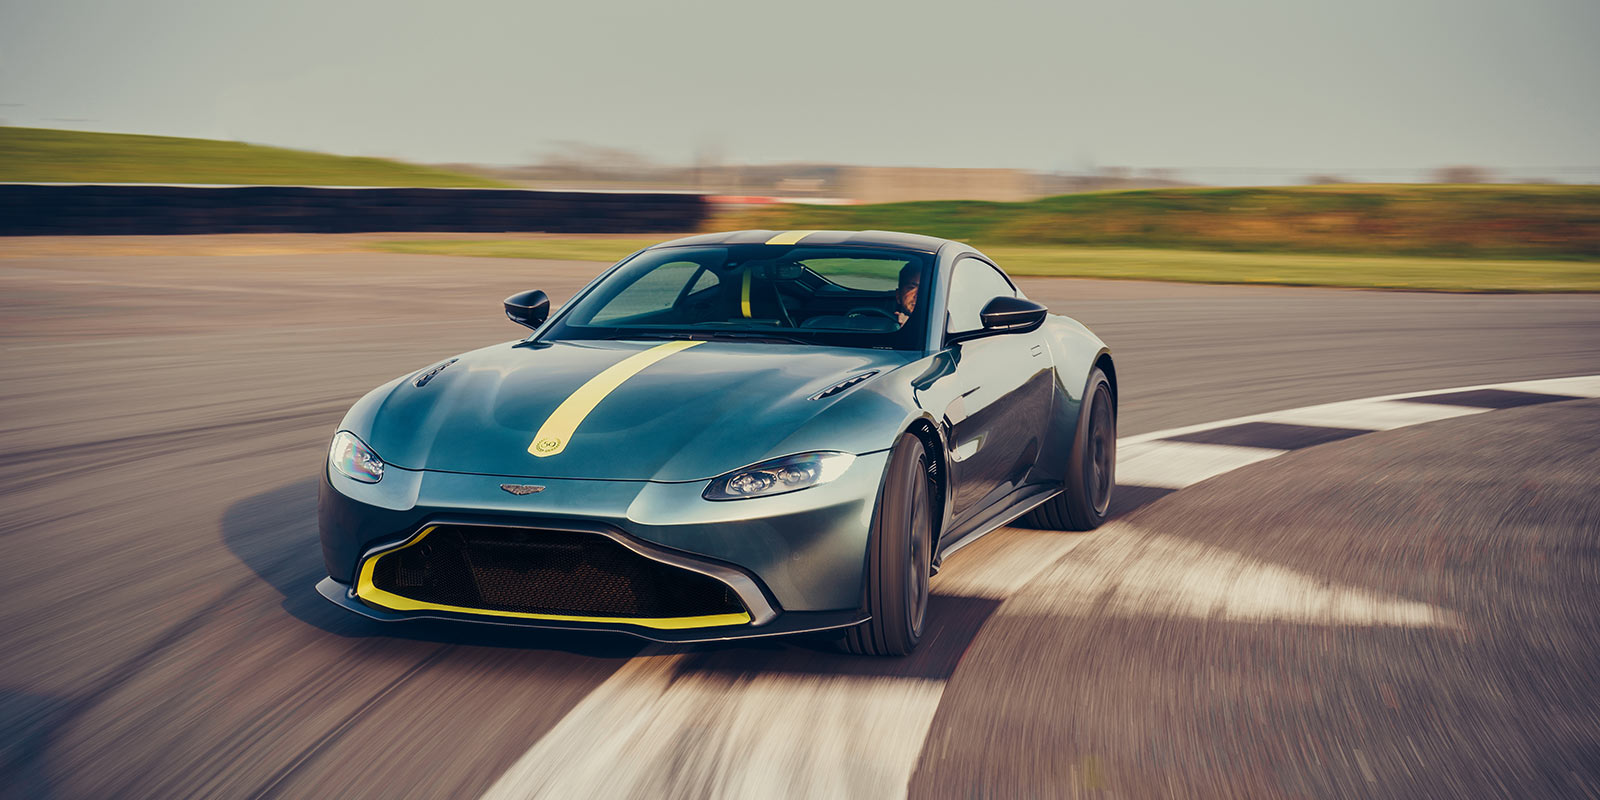 Aston Martin Vantage AMR - Limited Edition - Pure, Engaging Performance